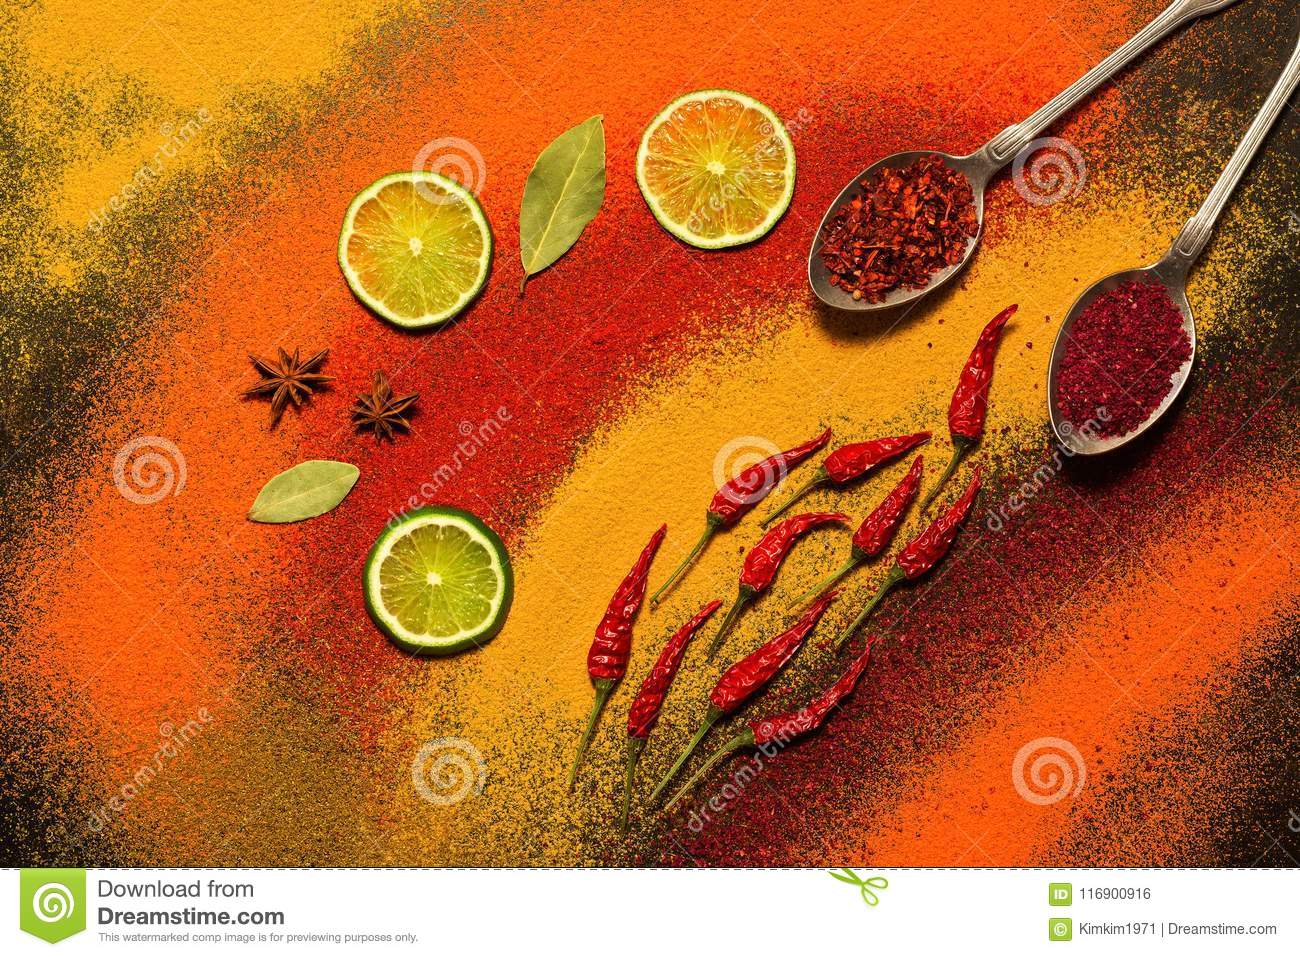 Background of various spices, red, orange, yellow. Paprika, turmeric, anise, bay leaf, chilli pepper, lime, saffron. Assorted spic